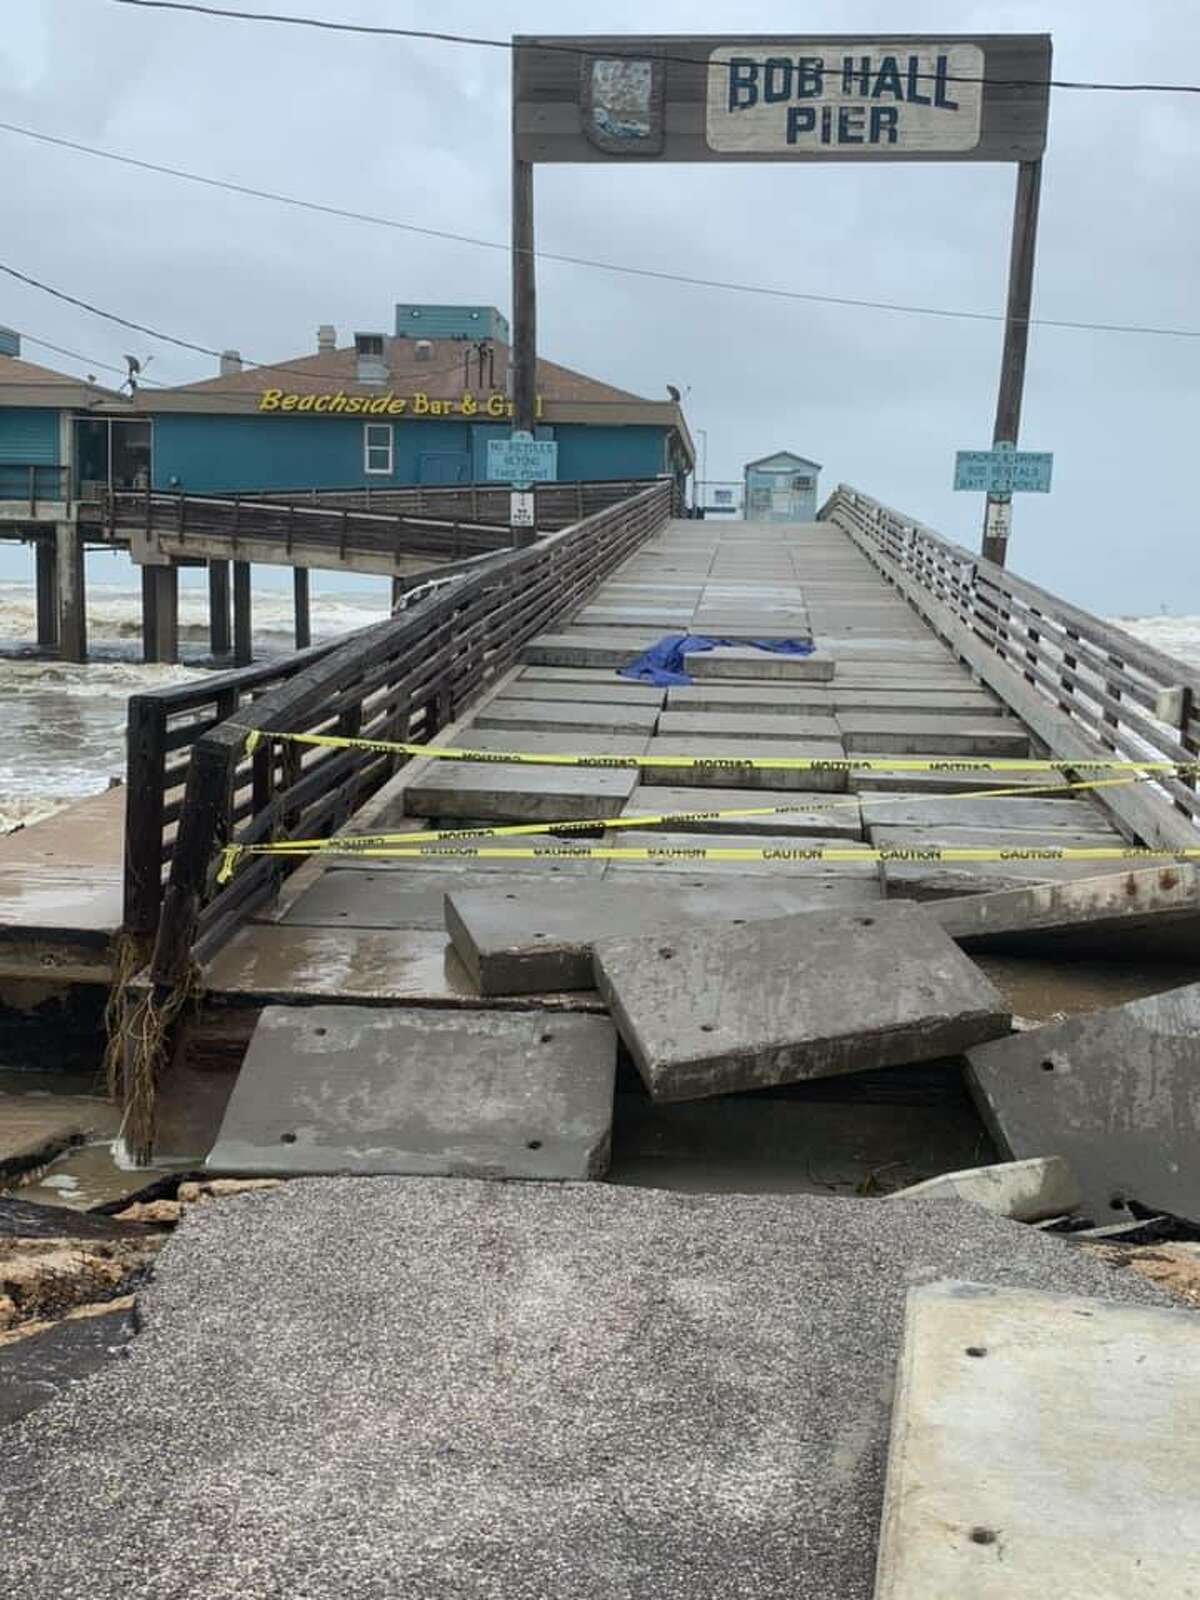 Bob Hall Pier: A portion of Bob Hall Pier in Corpus Christi collapsed due to the stormy conditions caused by Hurricane Hanna over the weekend, according to Nueces County officials. The popular pier will be closed until further notice.